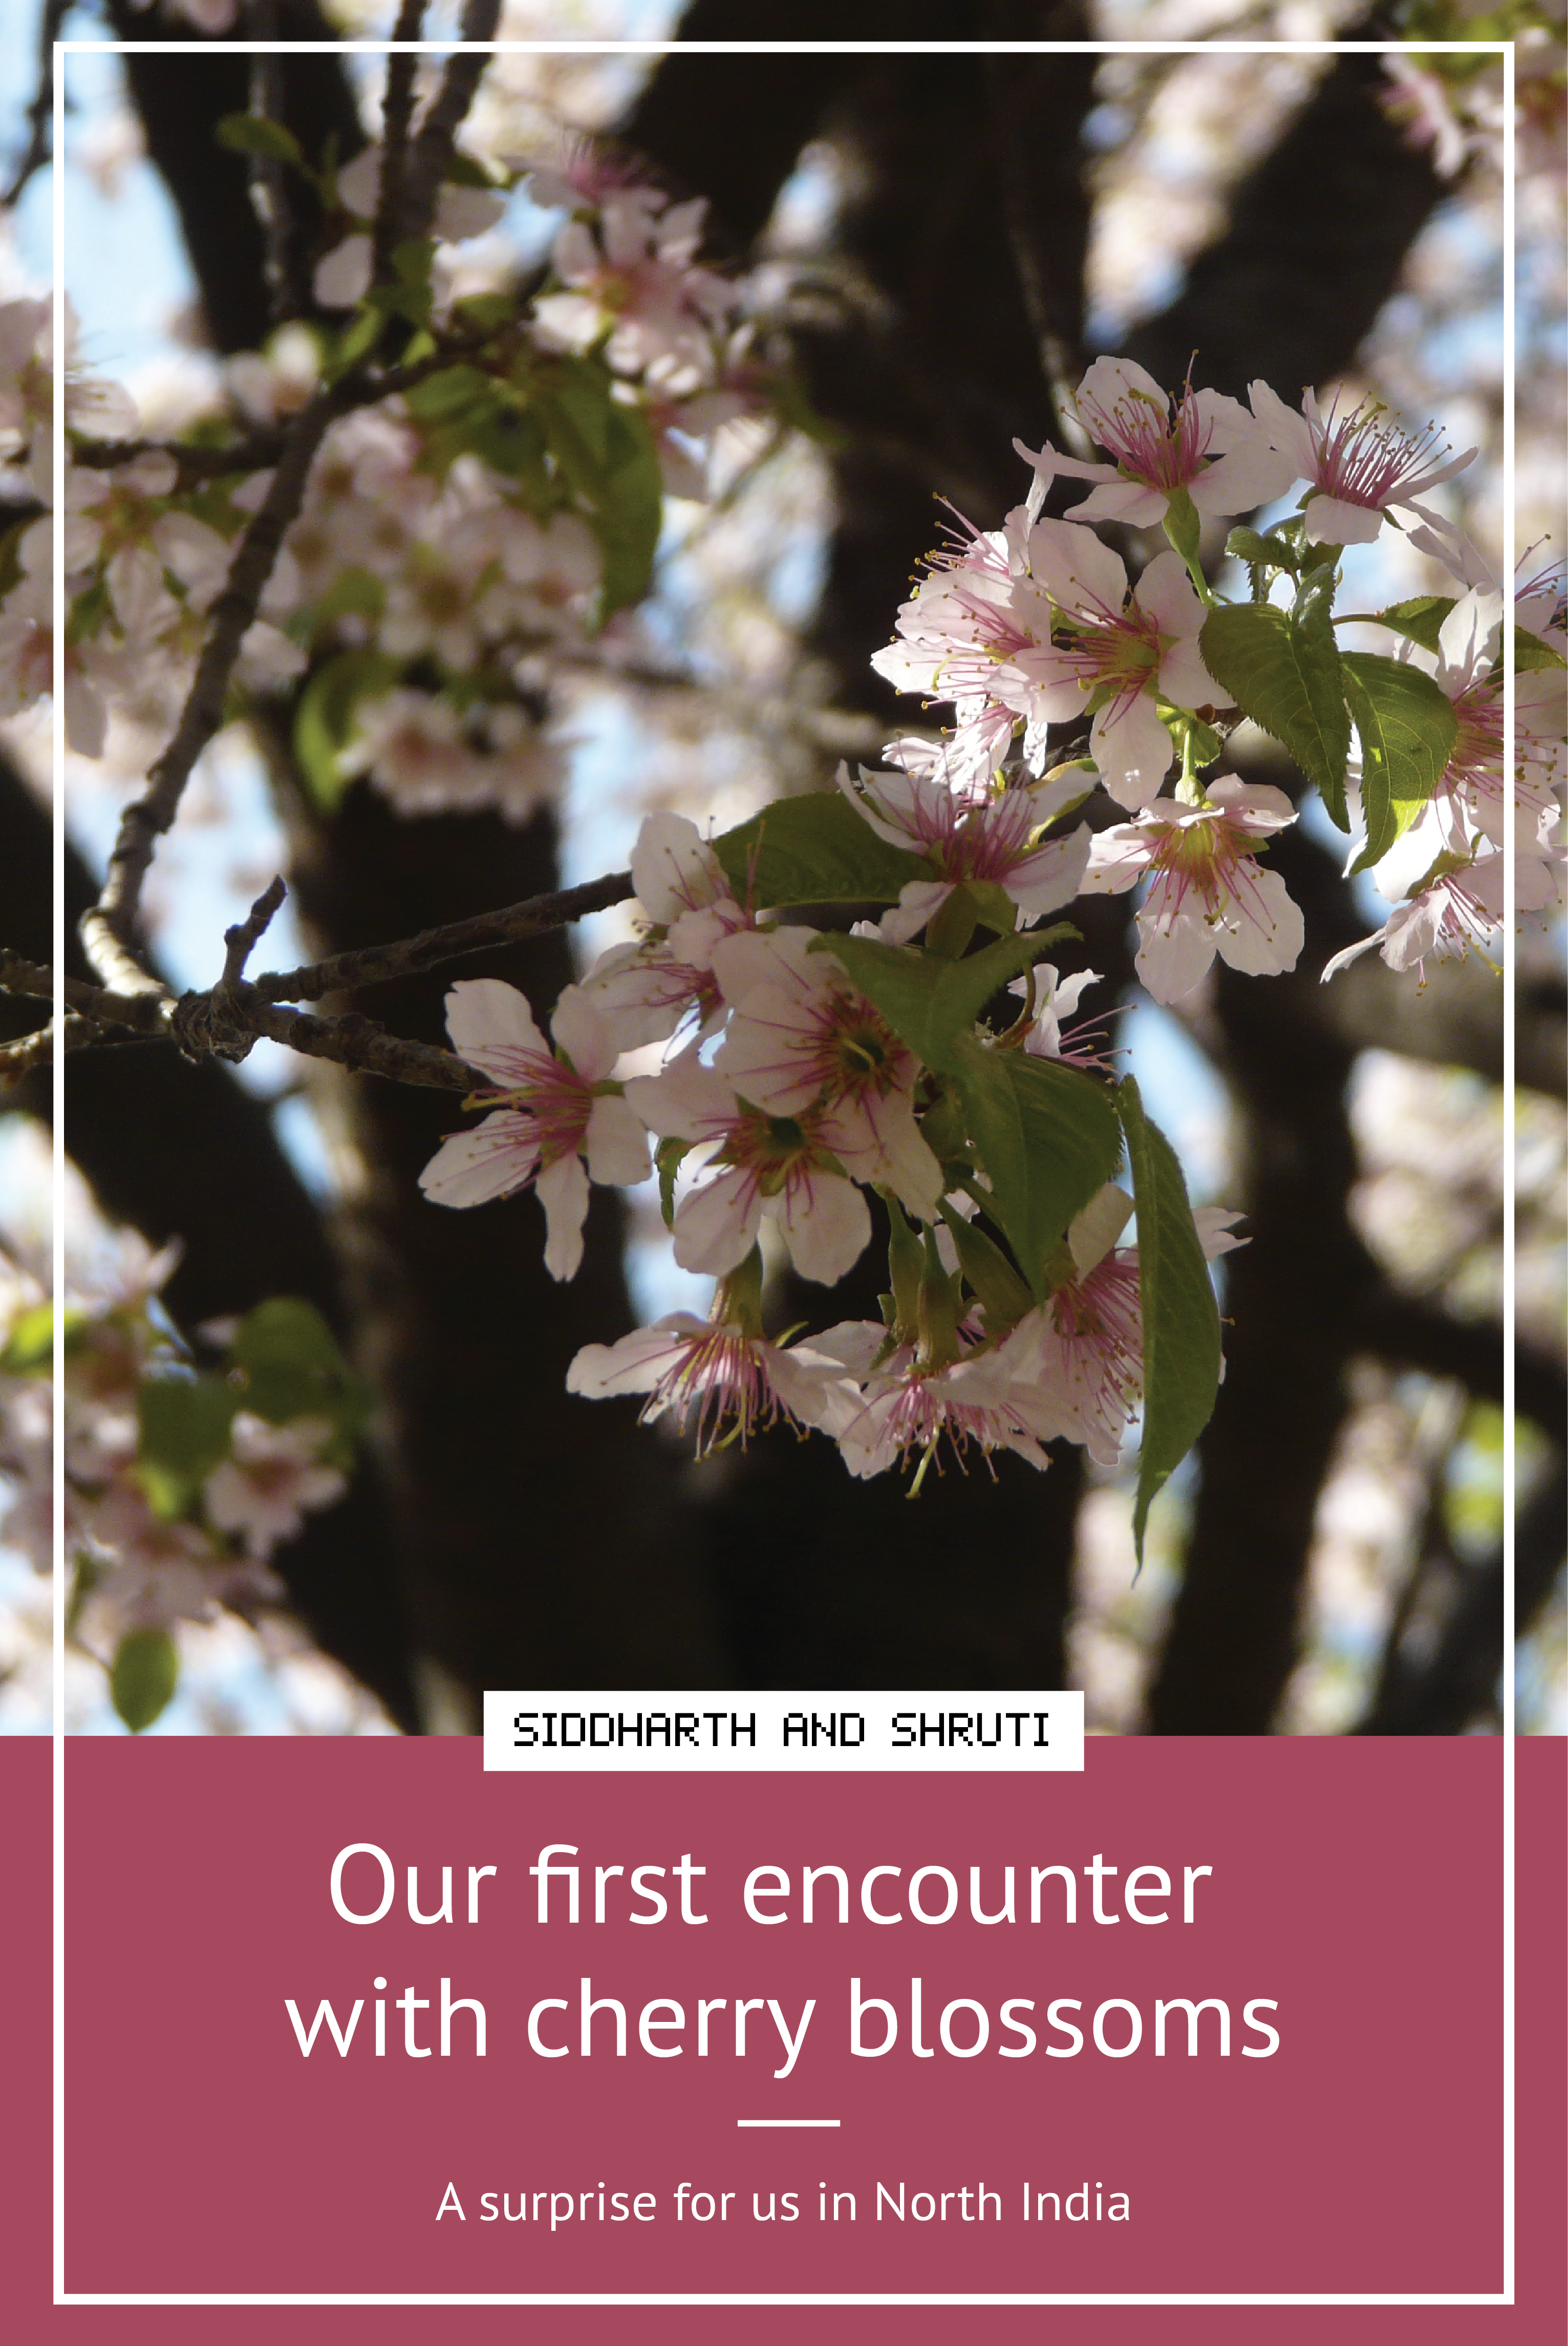 Our first encounter with cherry blossoms | Siddharth and Shruti